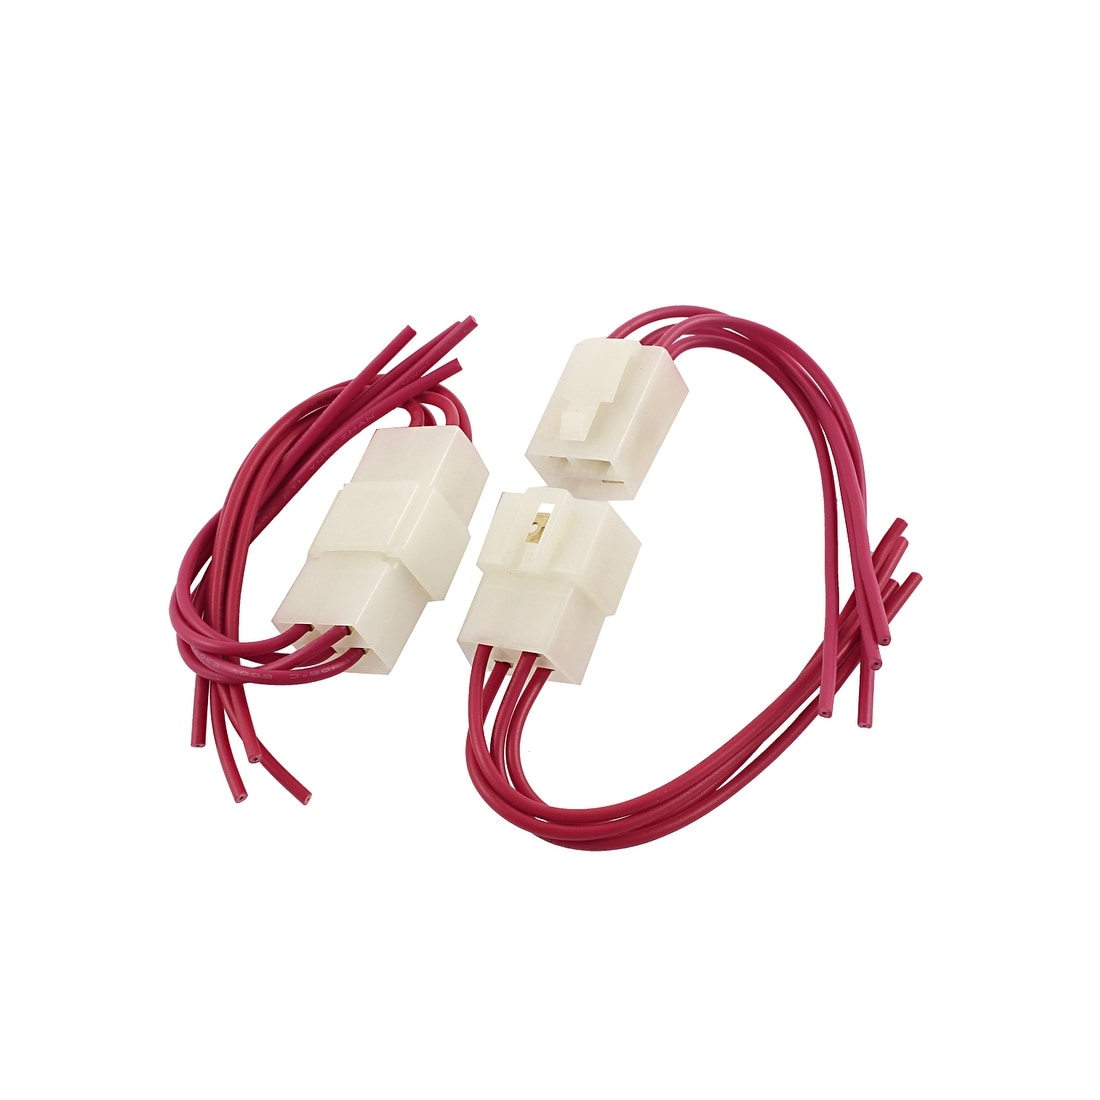 hight resolution of shop car audio radio stereo wiring harness 4 pin wire adapter connectors 2pcs on sale free shipping on orders over 45 overstock 18260038